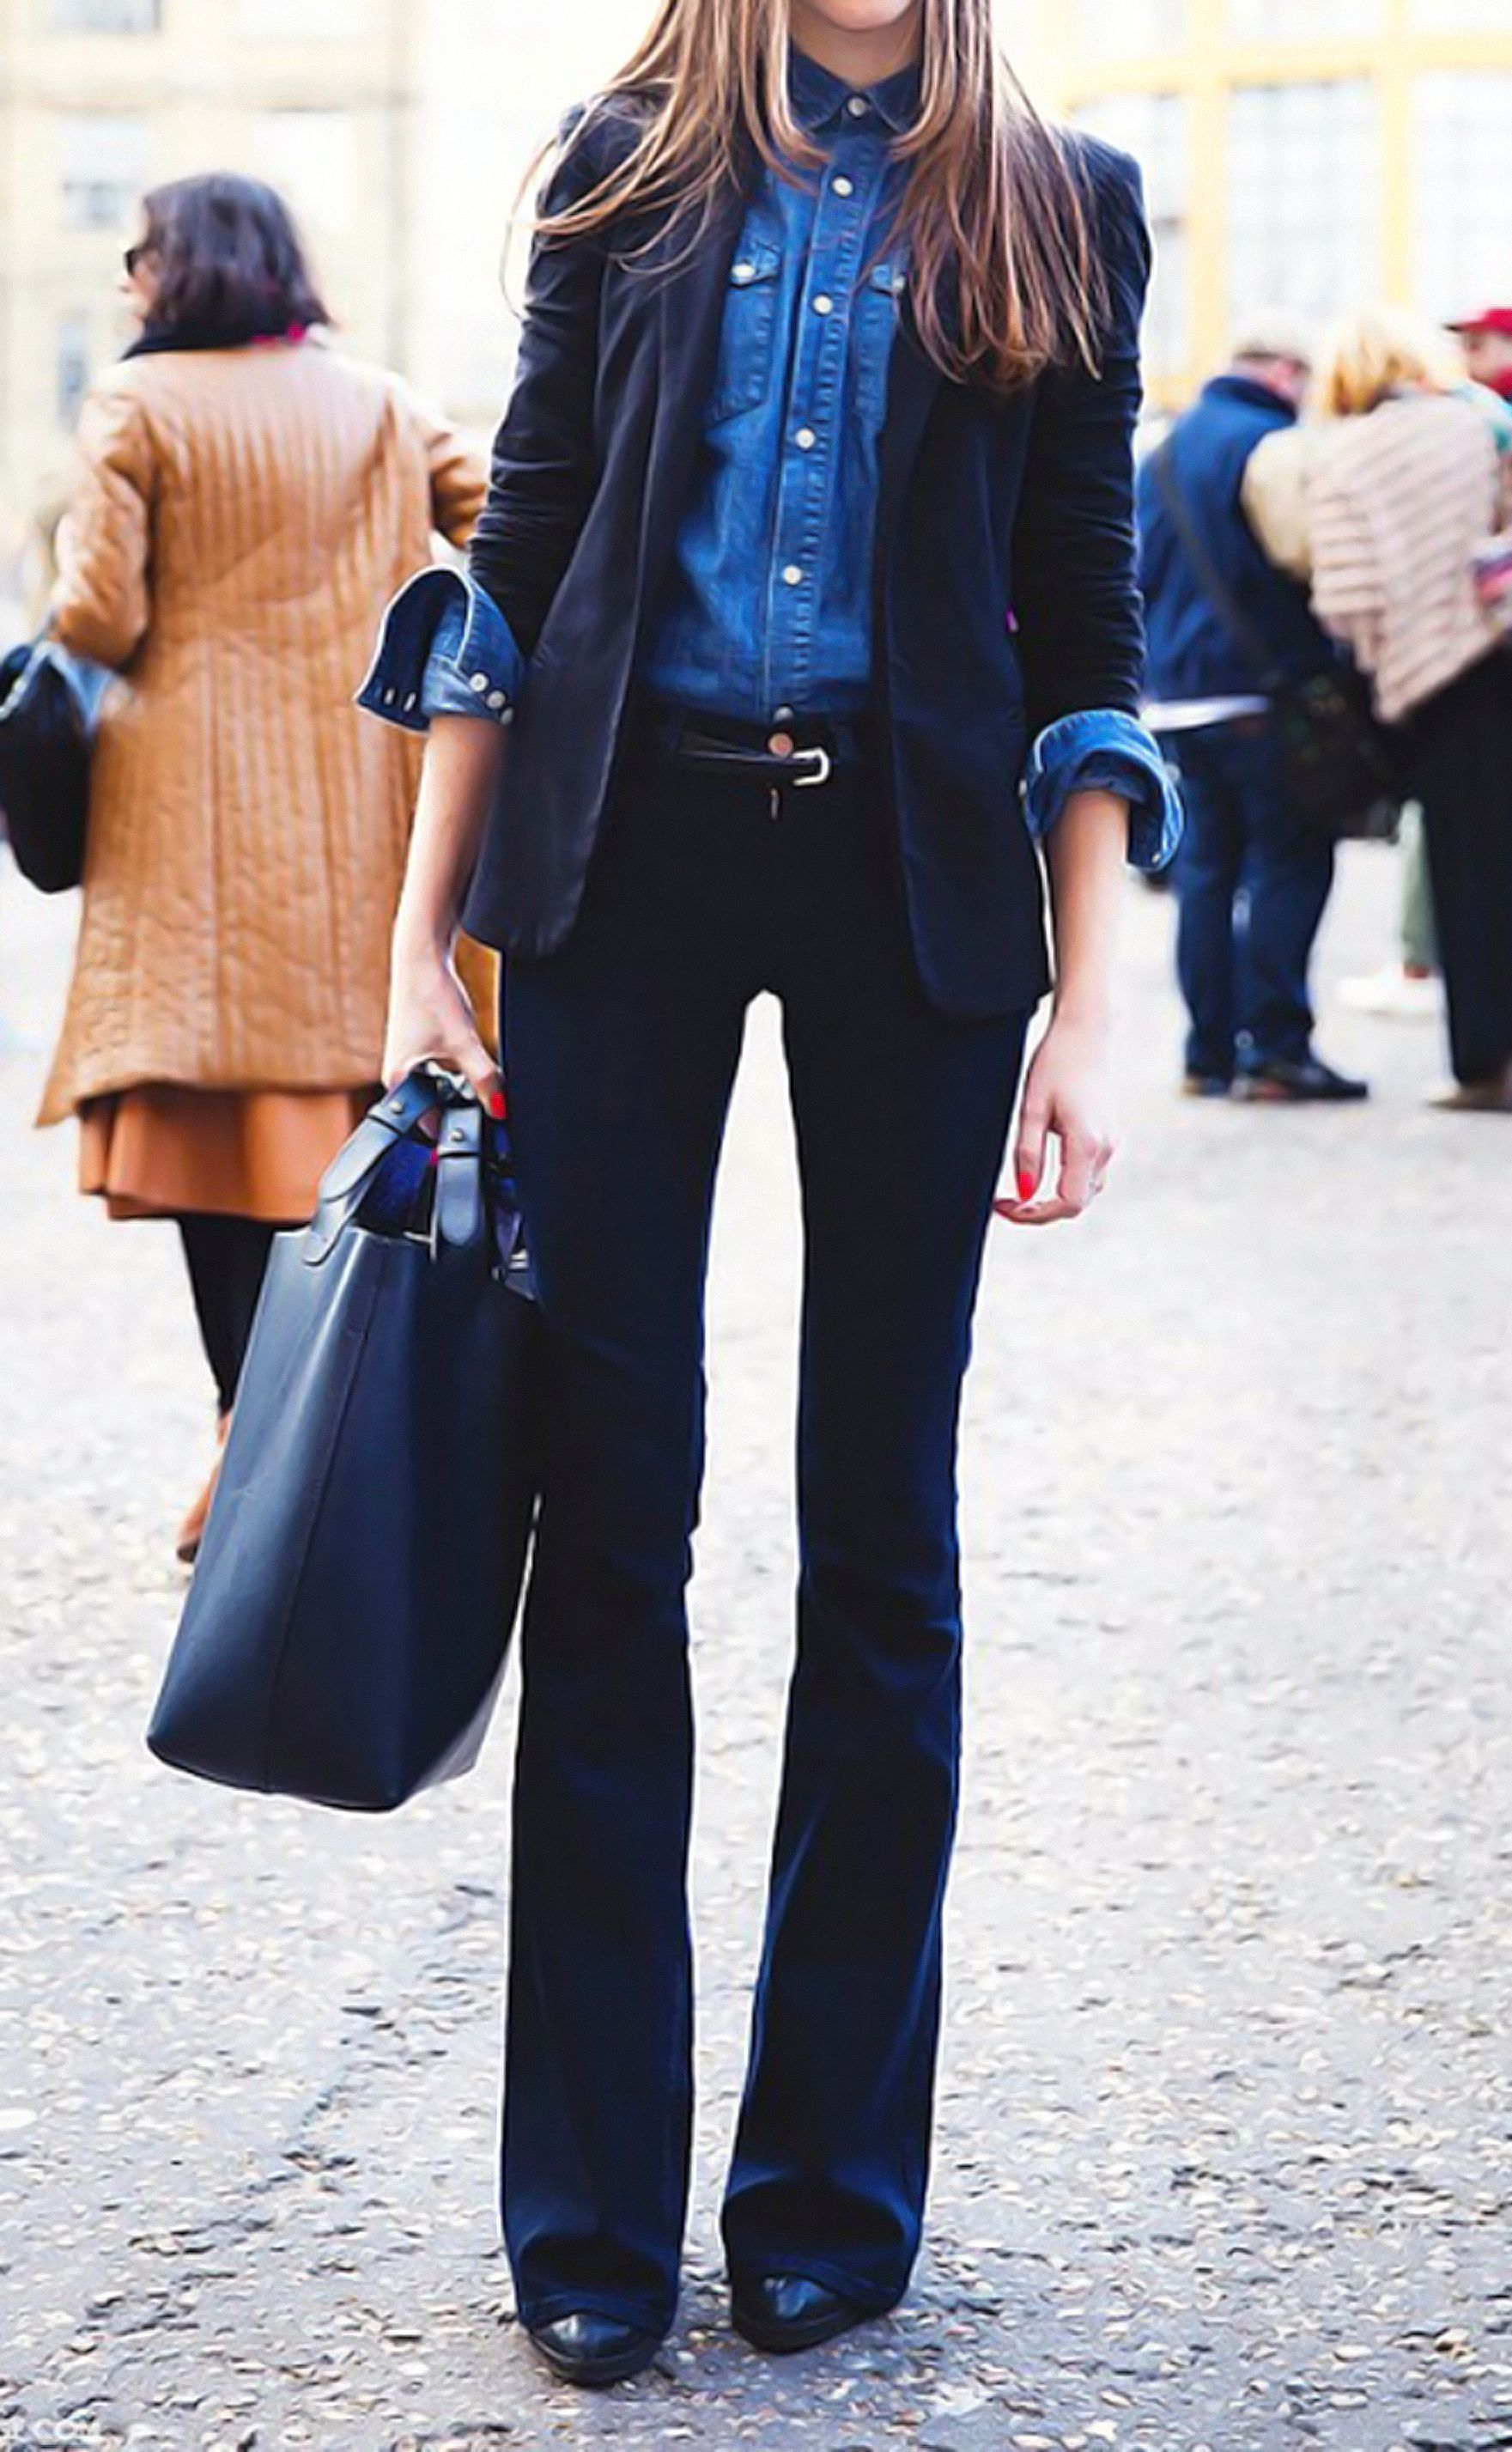 A bit of seventies style with the flared jeans and blazer